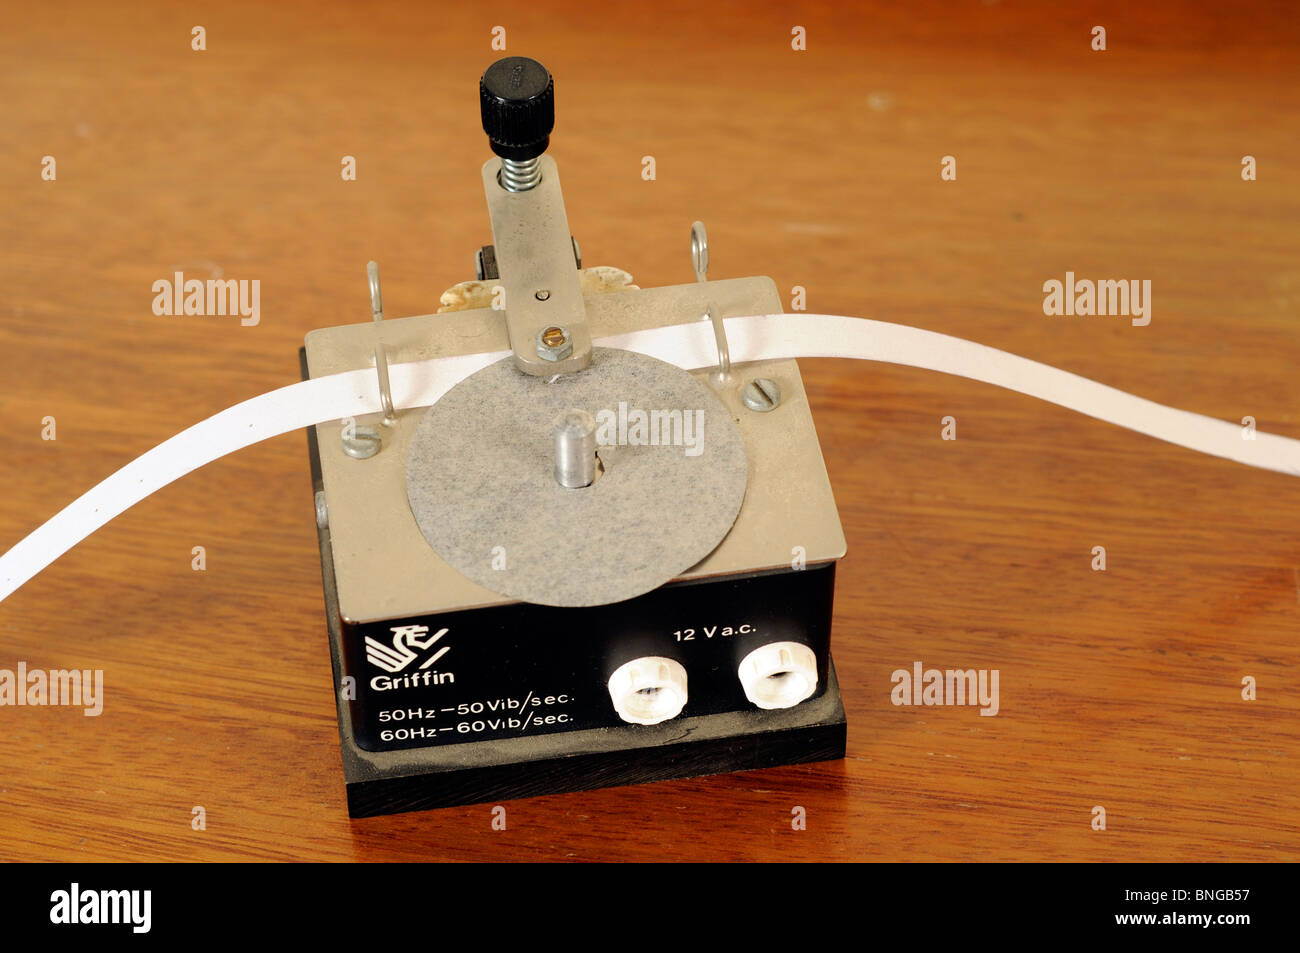 Ticker tape timer - Stock Image